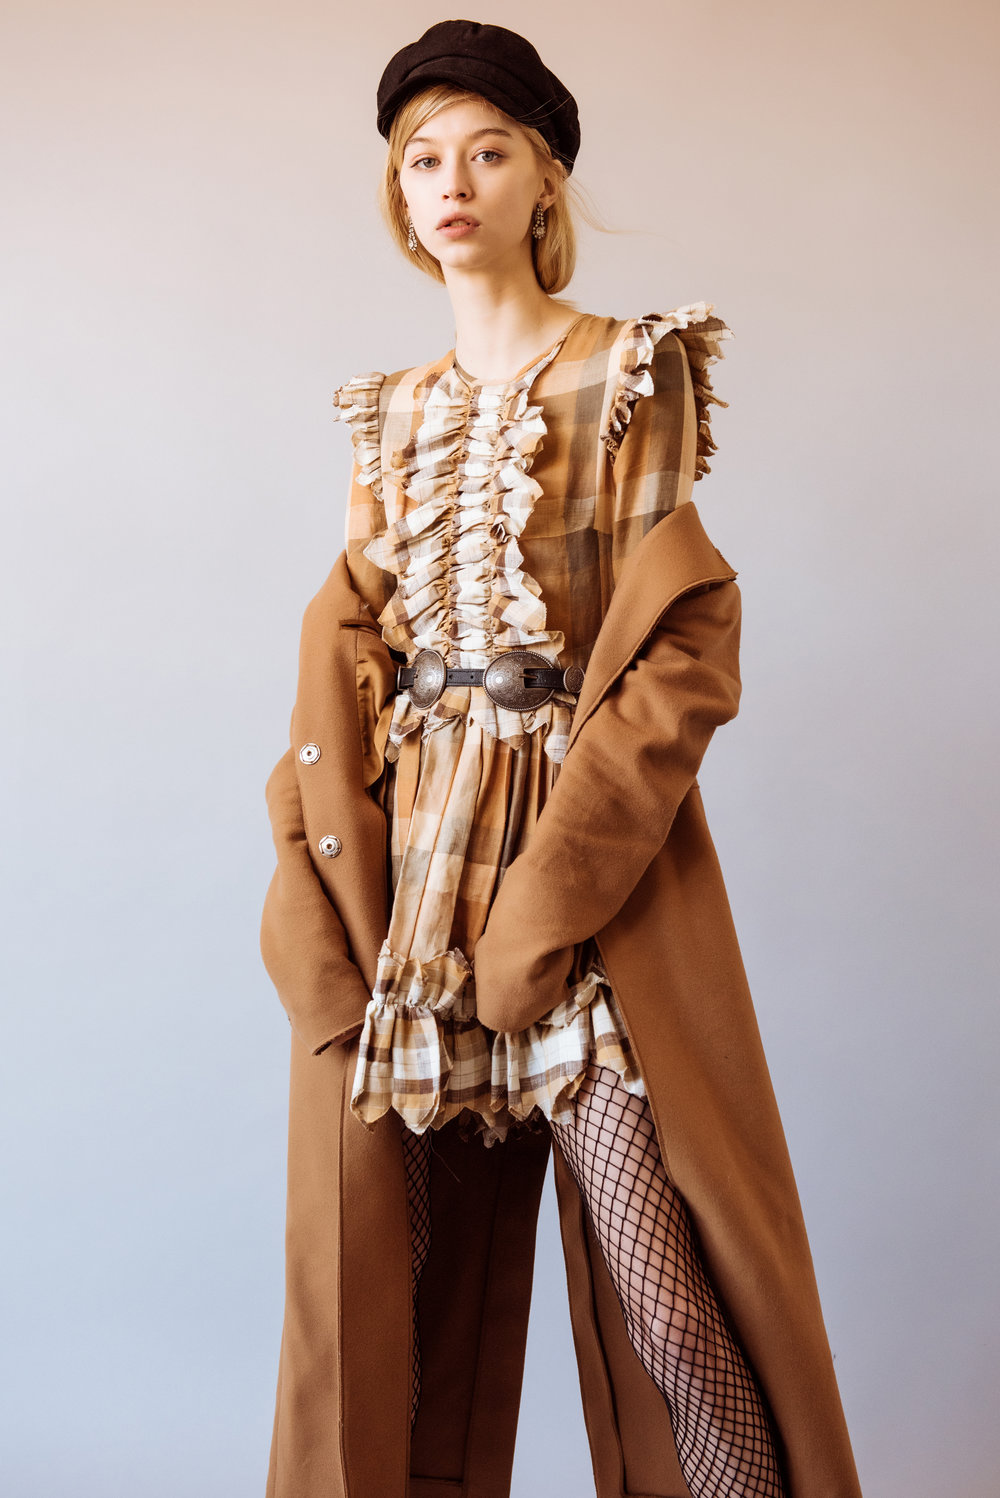 Copy of Tiffany Nicholson shoots Kelsey Randall plaid linen copper brown cream zig zag ruffle front long sleeve circle skirt dress camel mohair coat beret